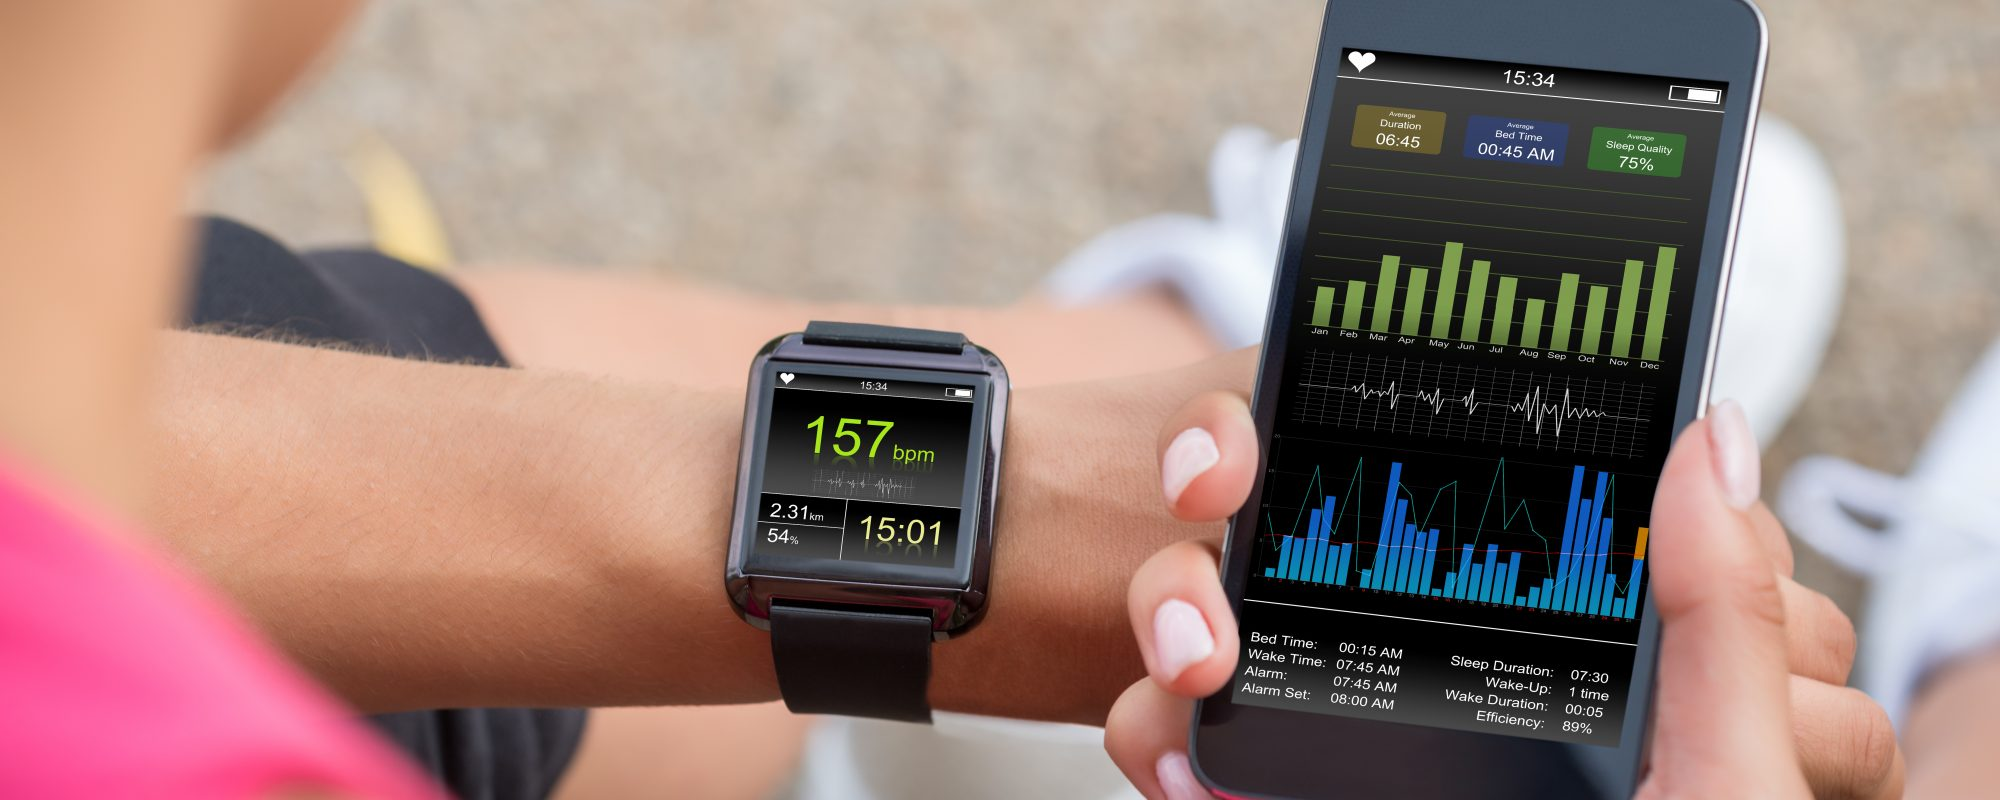 Fitness tracker app and personal device